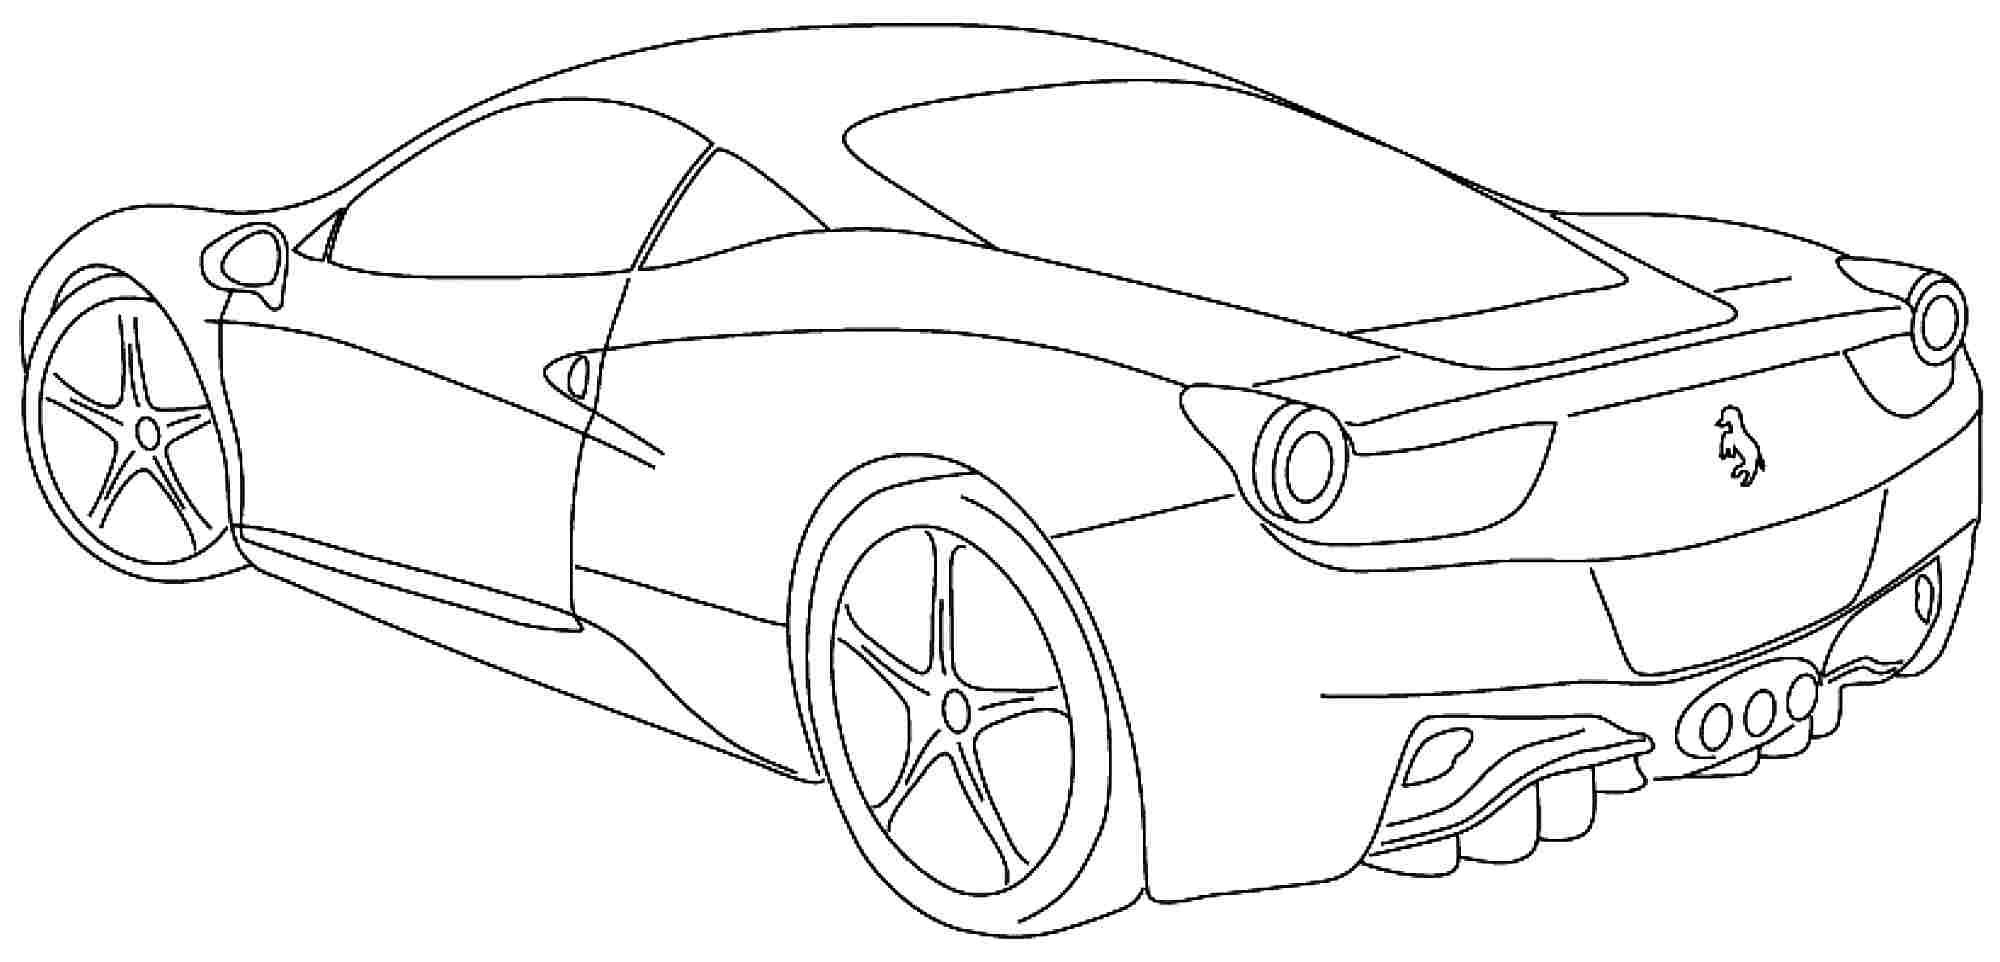 Sports Cars Coloring Pages Cars Coloring Pages Race Car Coloring Pages Sports Coloring Pages